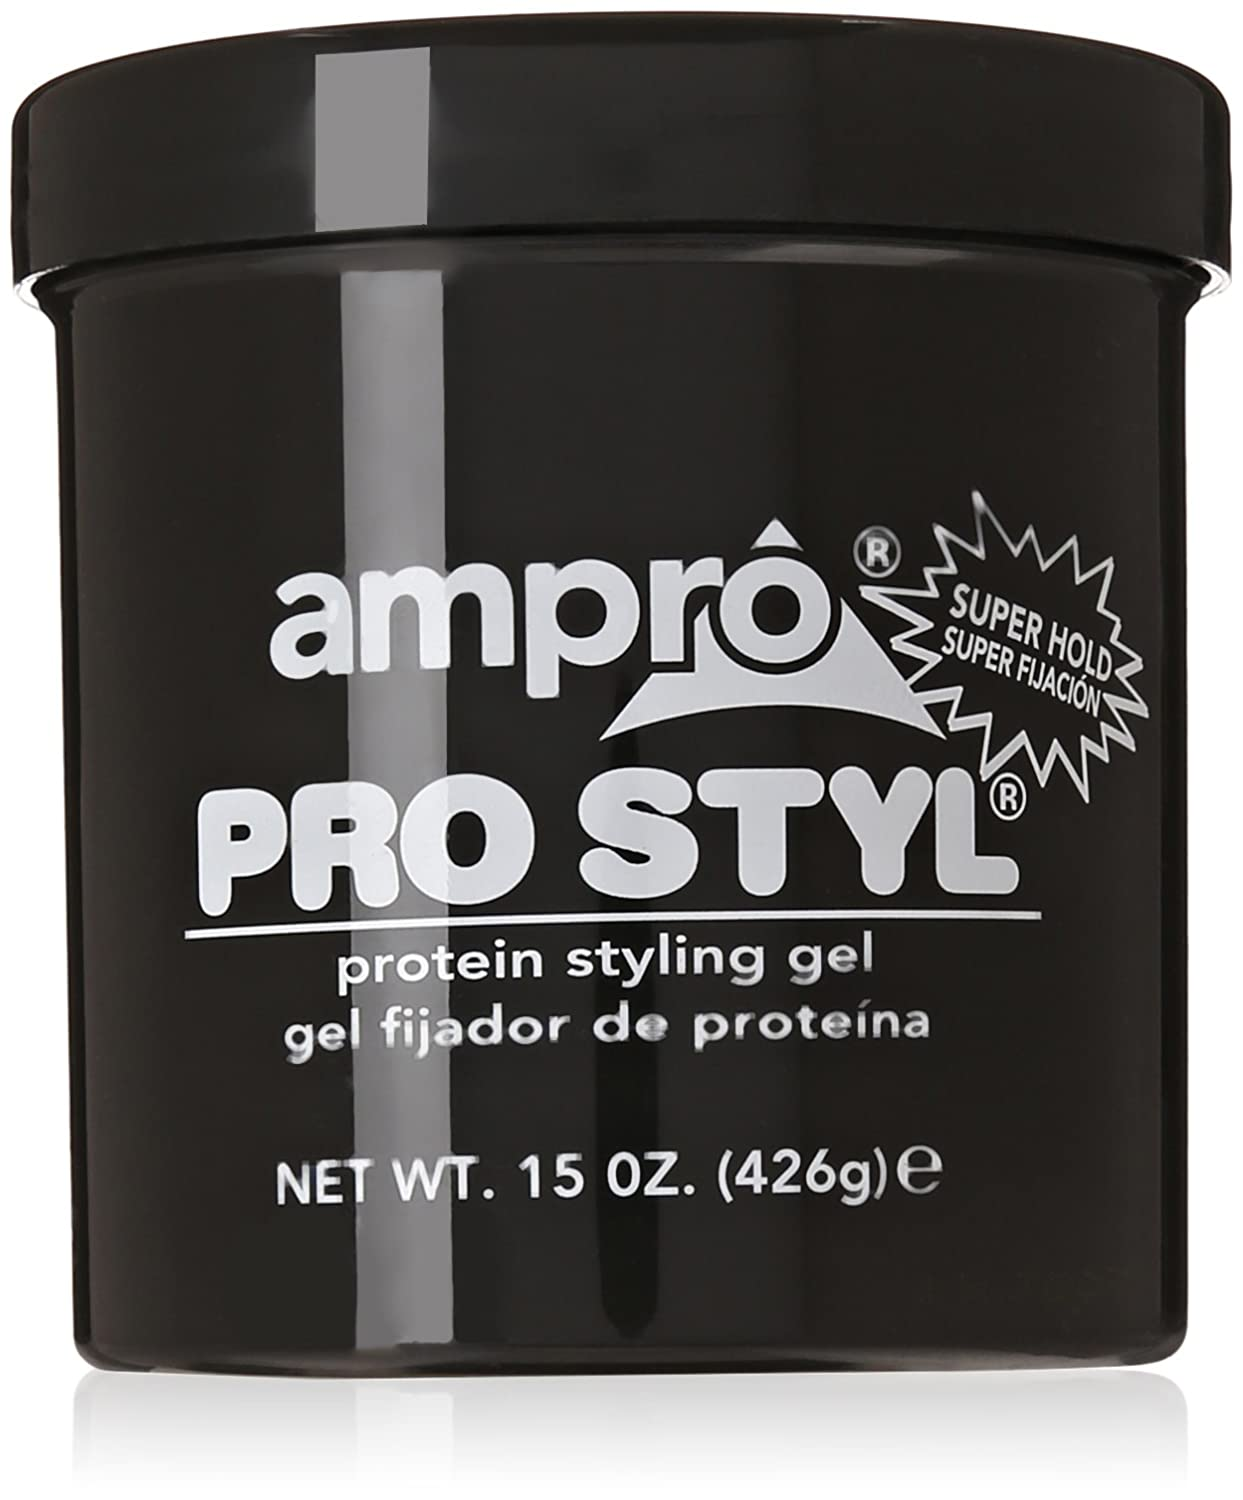 AMPRO STYLING GEL SUPER HOLD 6 Z(Pack of1)